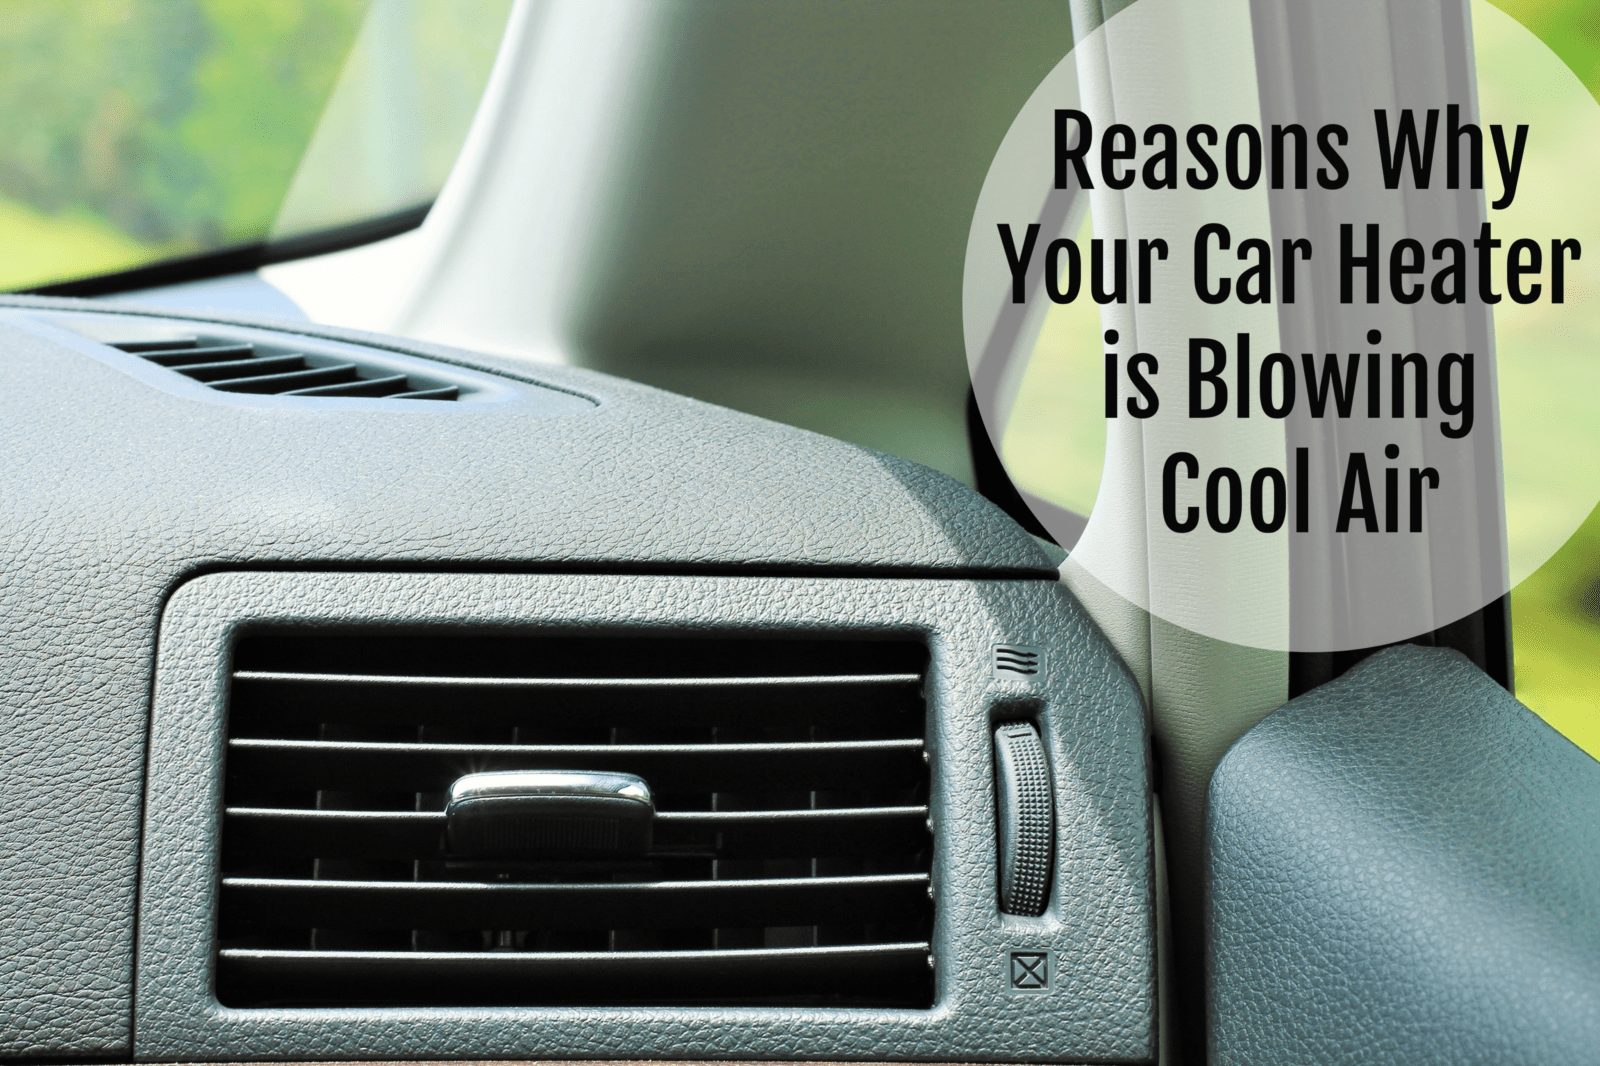 reasons why your car heater is blowing cool air